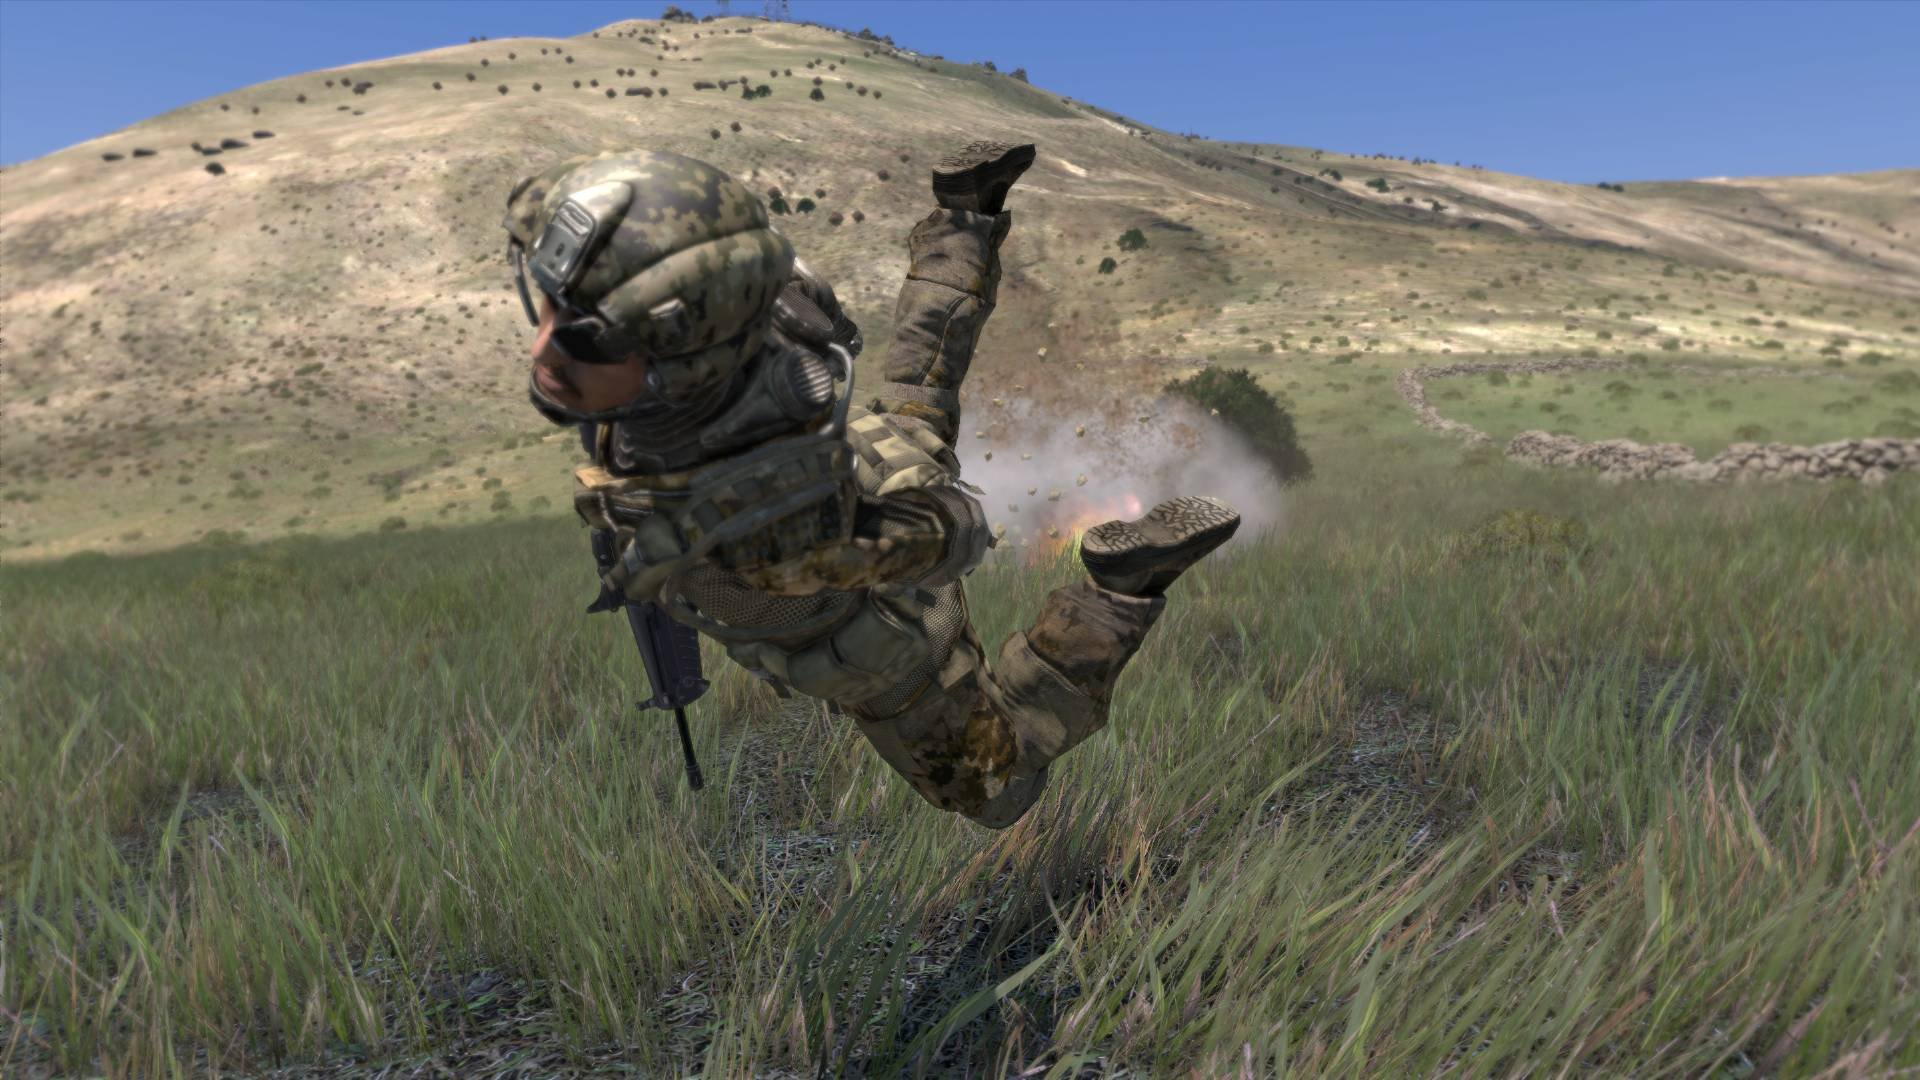 arma_3_screenshot___ragdoll_by_arma3-d4usdou